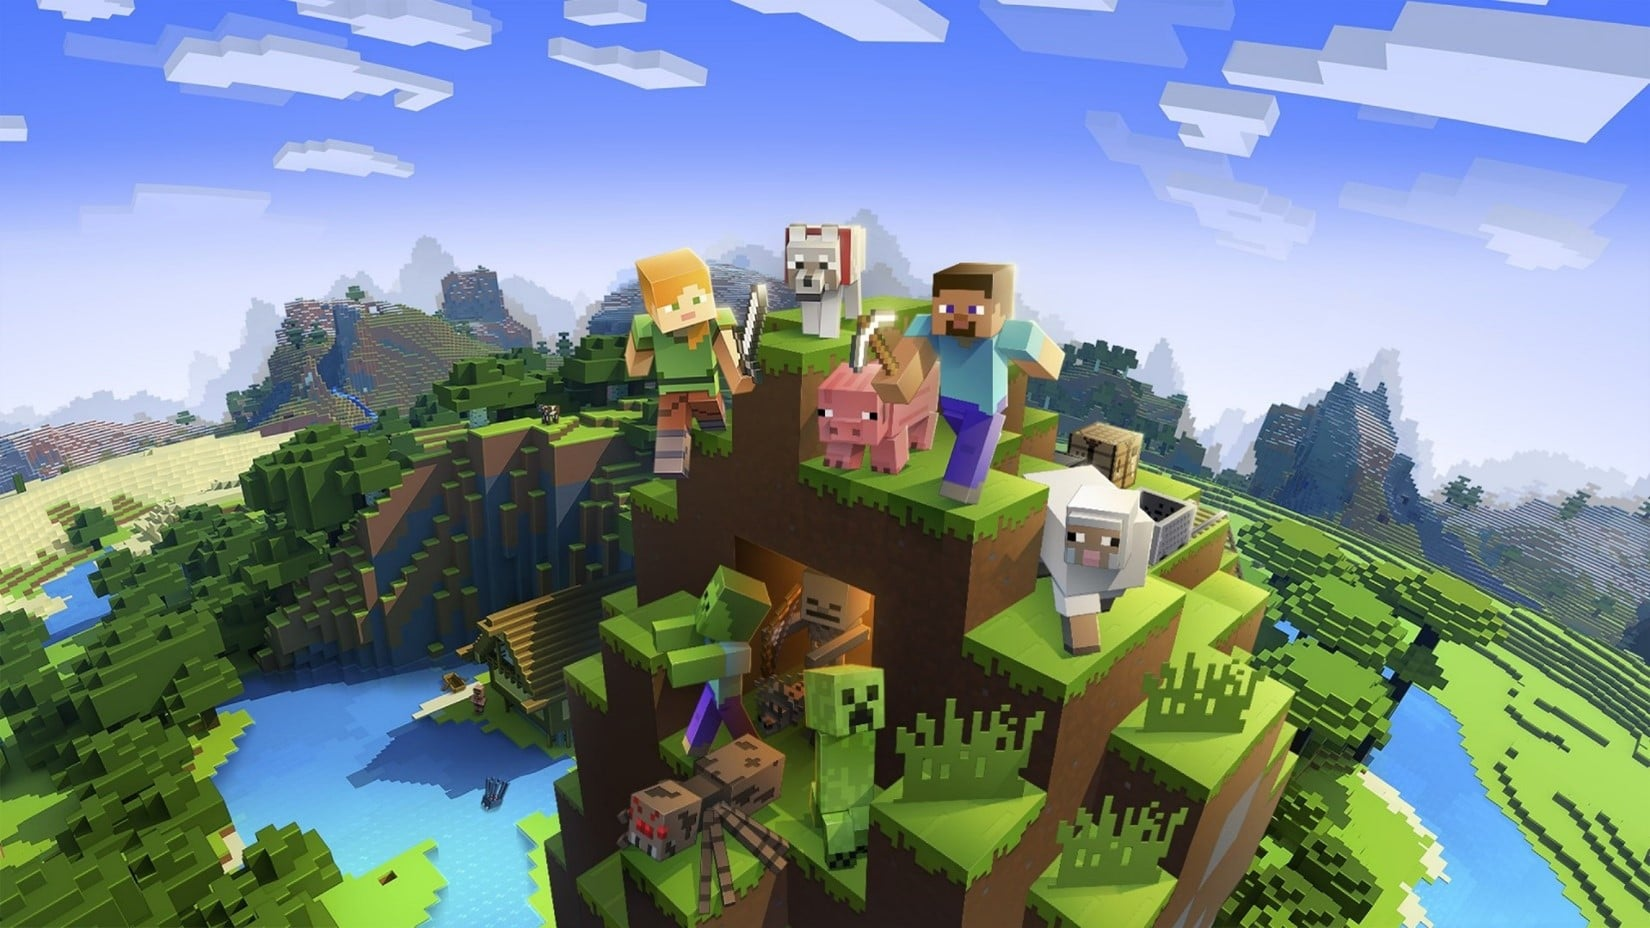 Minecraft will Require a Microsoft Account, Not Mojang